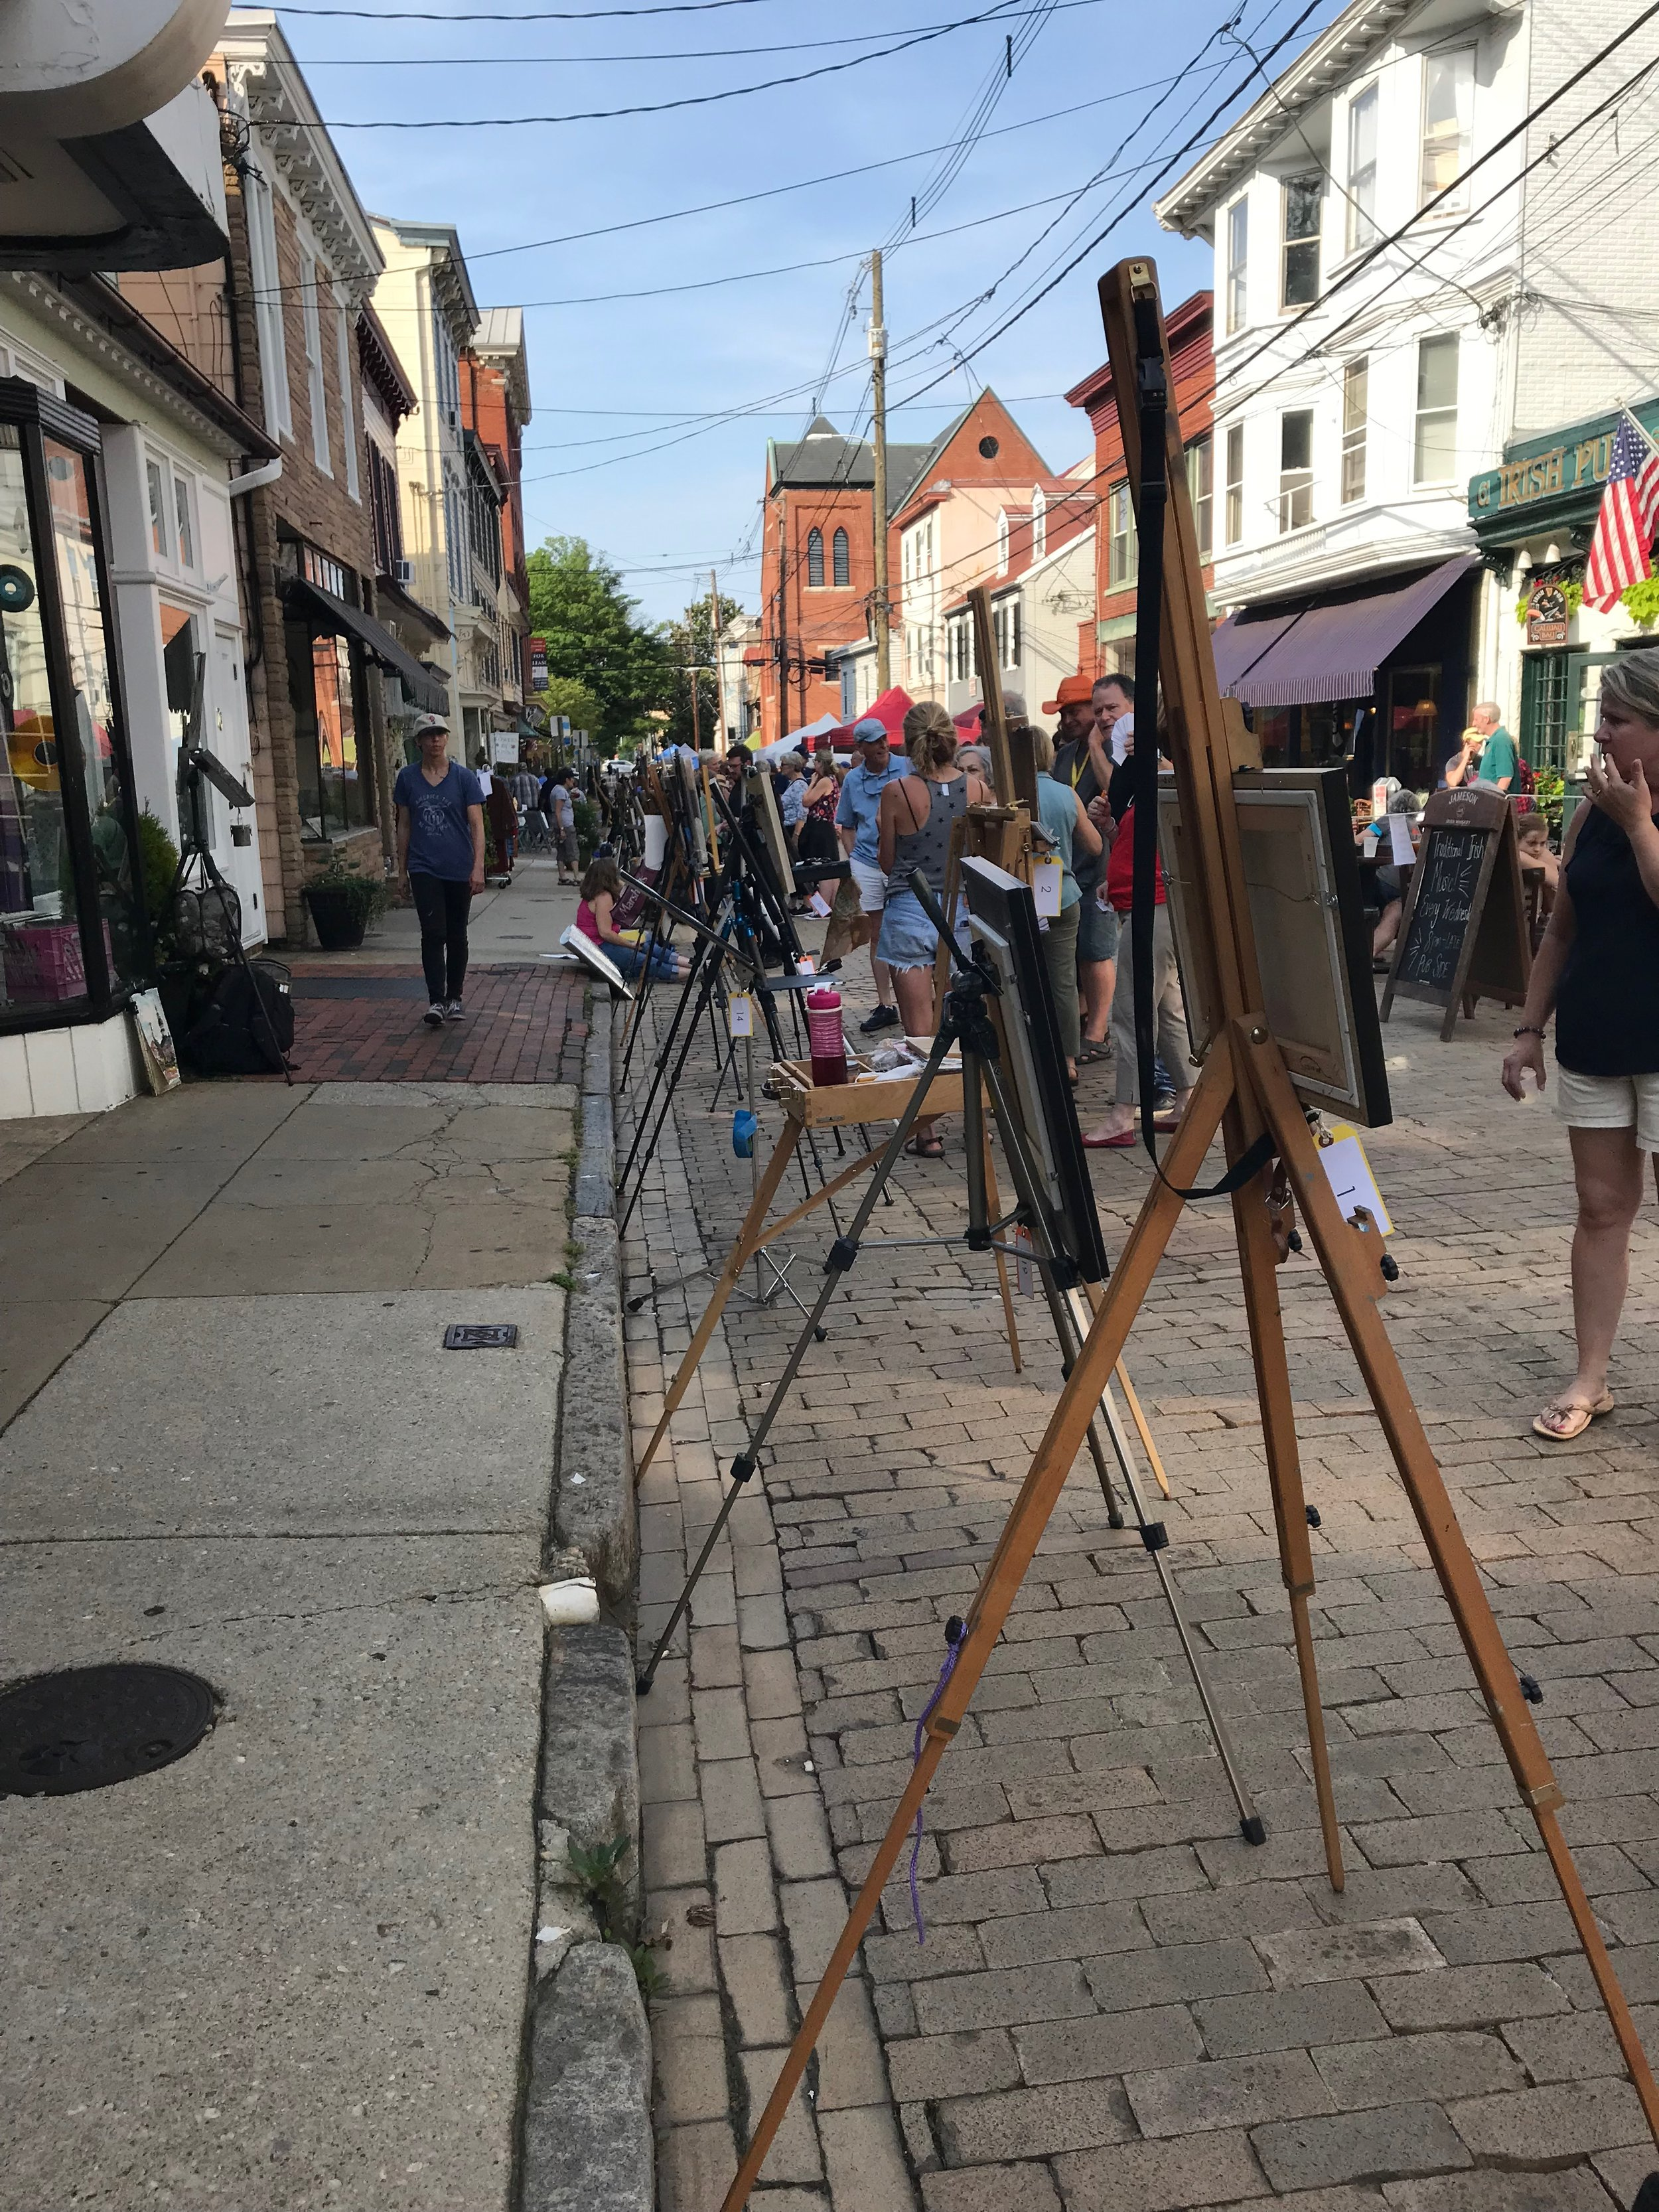 Easels lined up for display at Art on the Avenue in Annapolis, MD